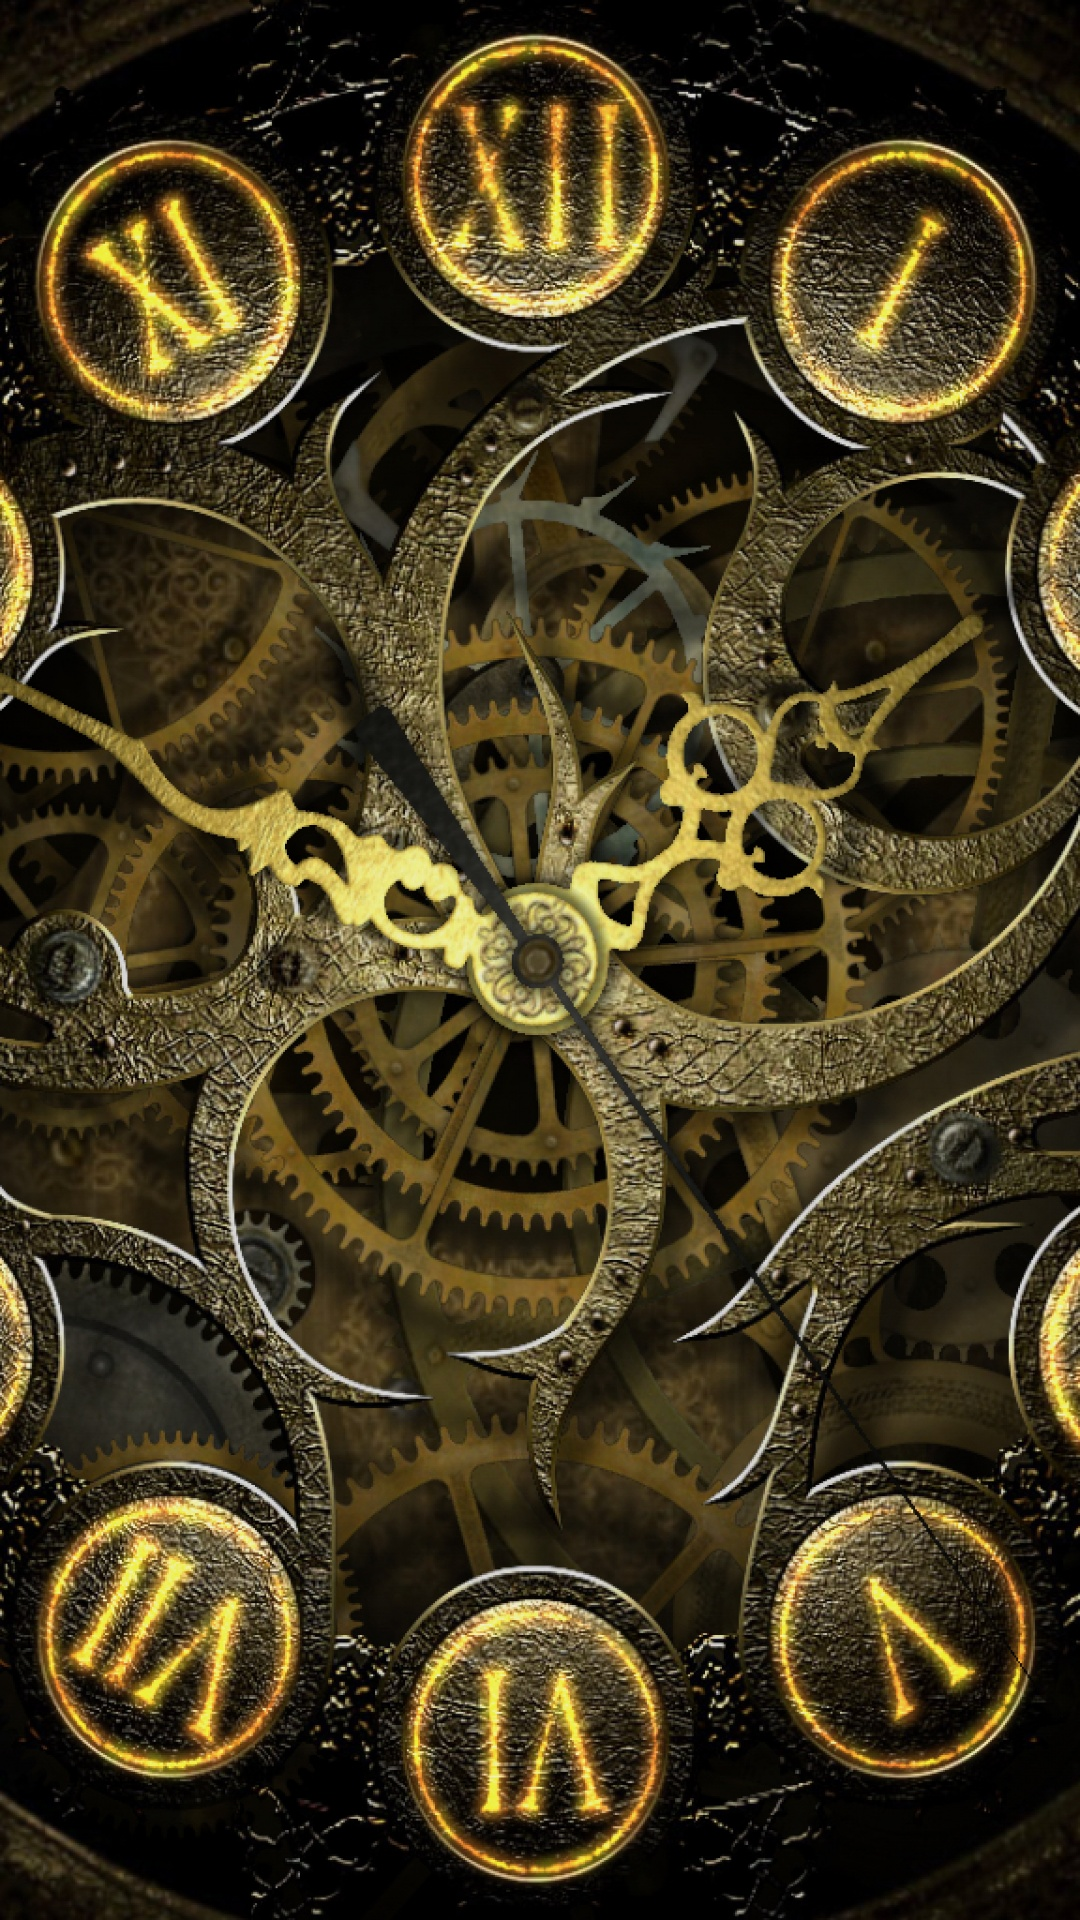 Steampunk Lockscreen iPhone 6 Plus HD Wallpaper iPod Wallpaper 1080x1920